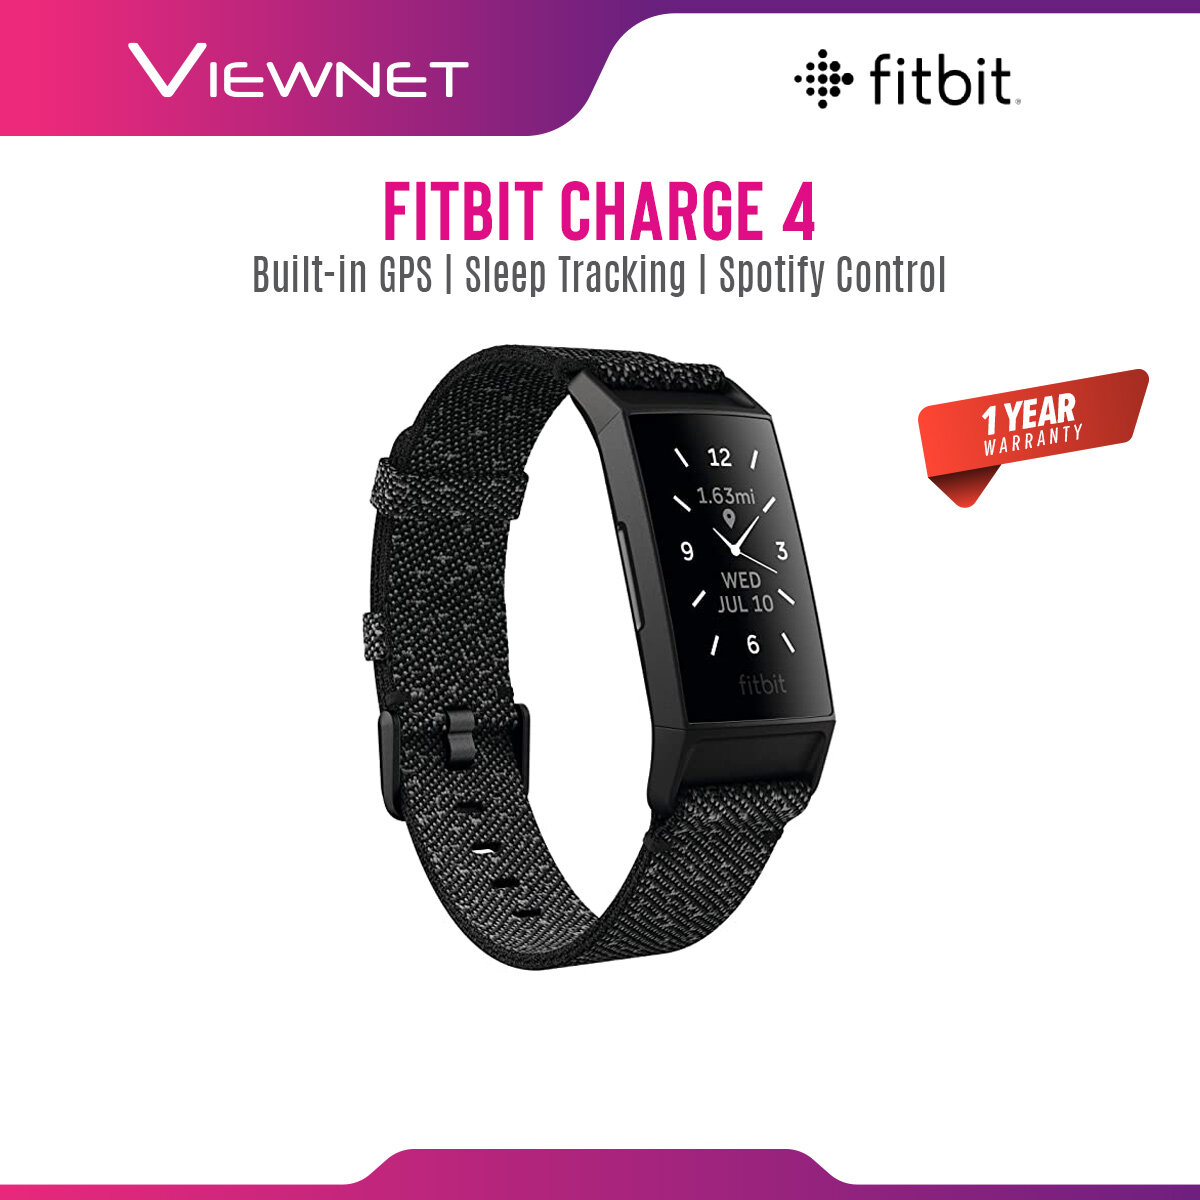 [Ready Stock] (NEW 2020 Model) Fitbit Charge 4 Advanced Health & Fitness Tracker Smartwatch with Built-in GPS 24/7 Heart Rate Tracking Battery Up To 7 Days (Black / Rosewood / Granite Reflective Woven)